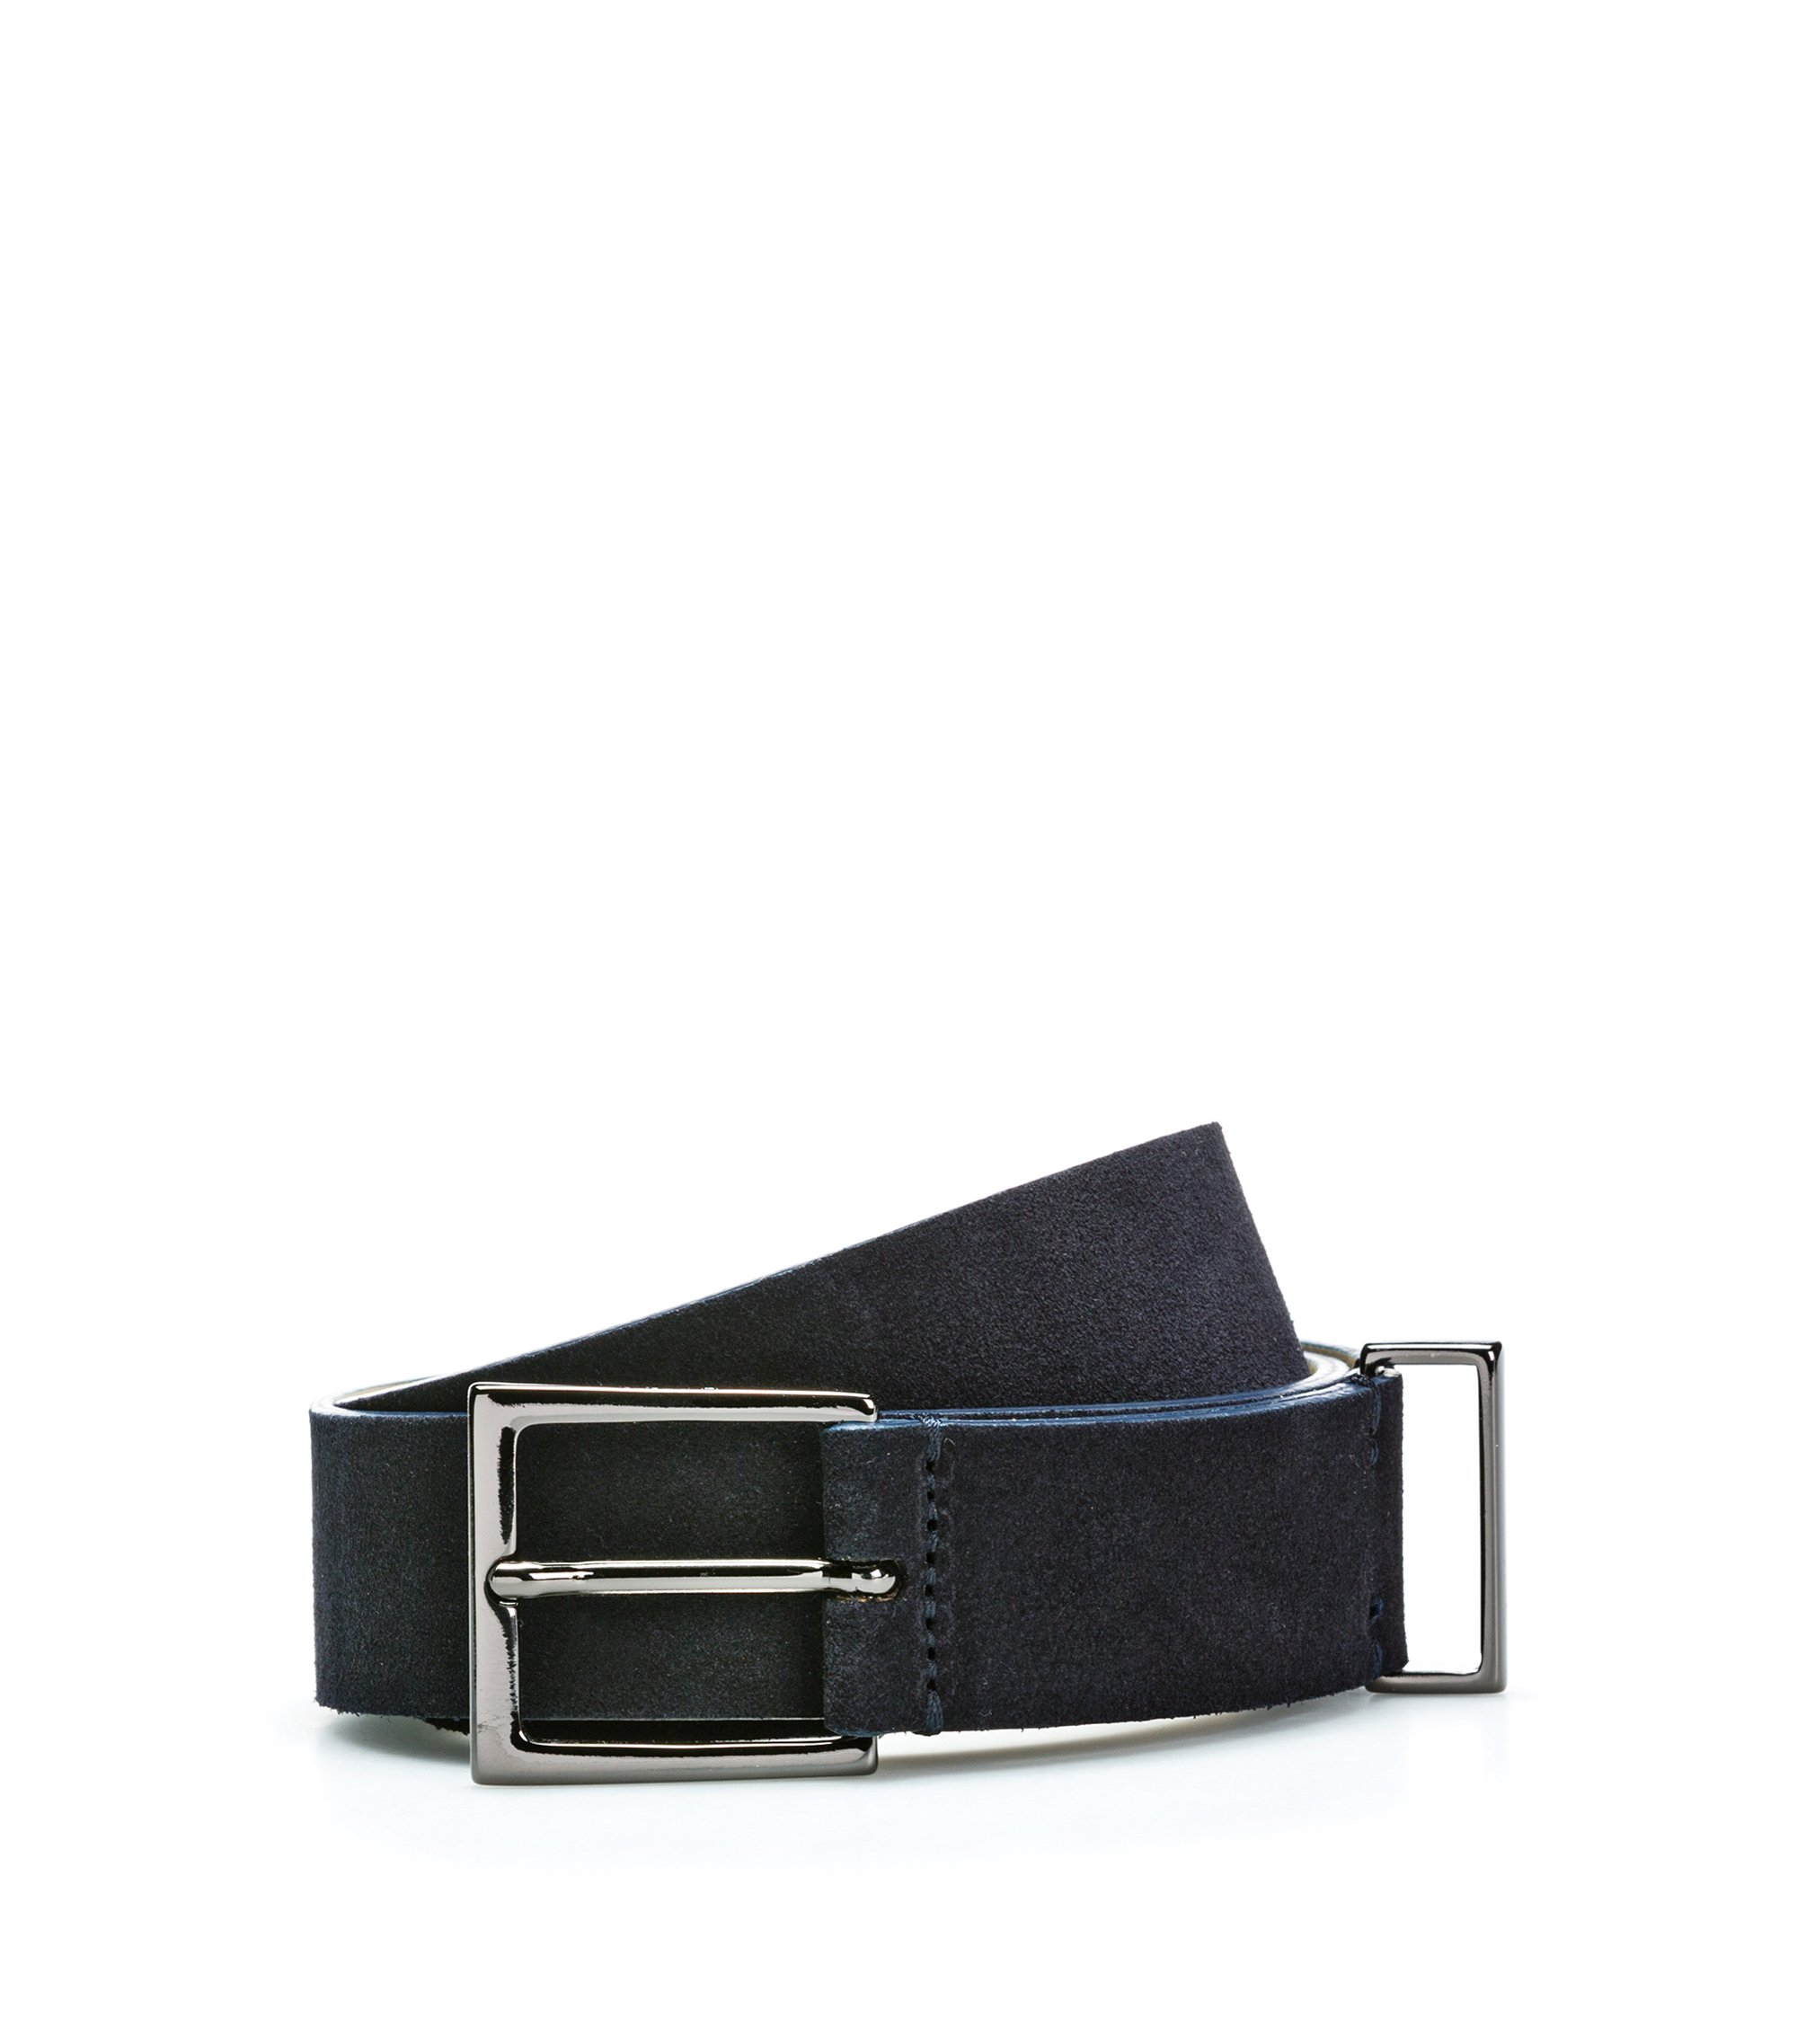 Suede leather belt with polished gunmetal hardware, Dark Blue